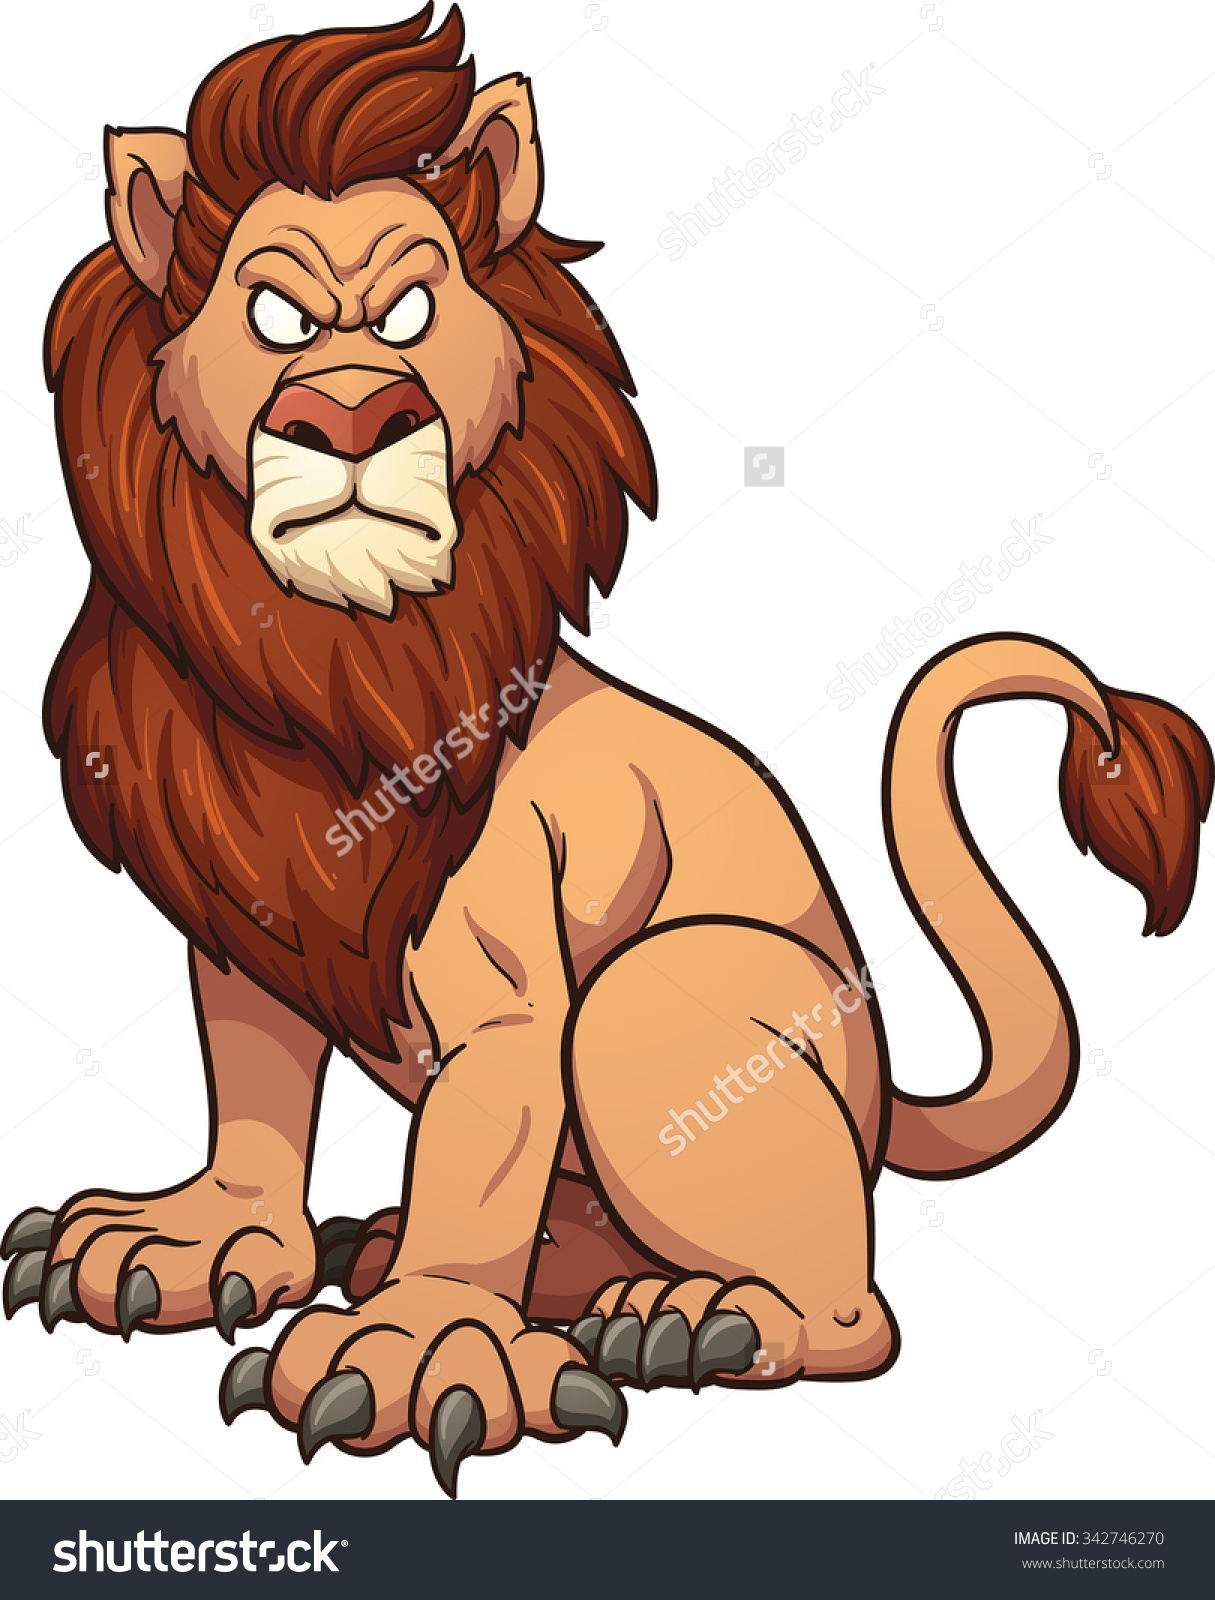 Graphic clipart lion angry svg Angry Cartoon Lion Vector Clip Art Stock Vector 342746270 ... svg